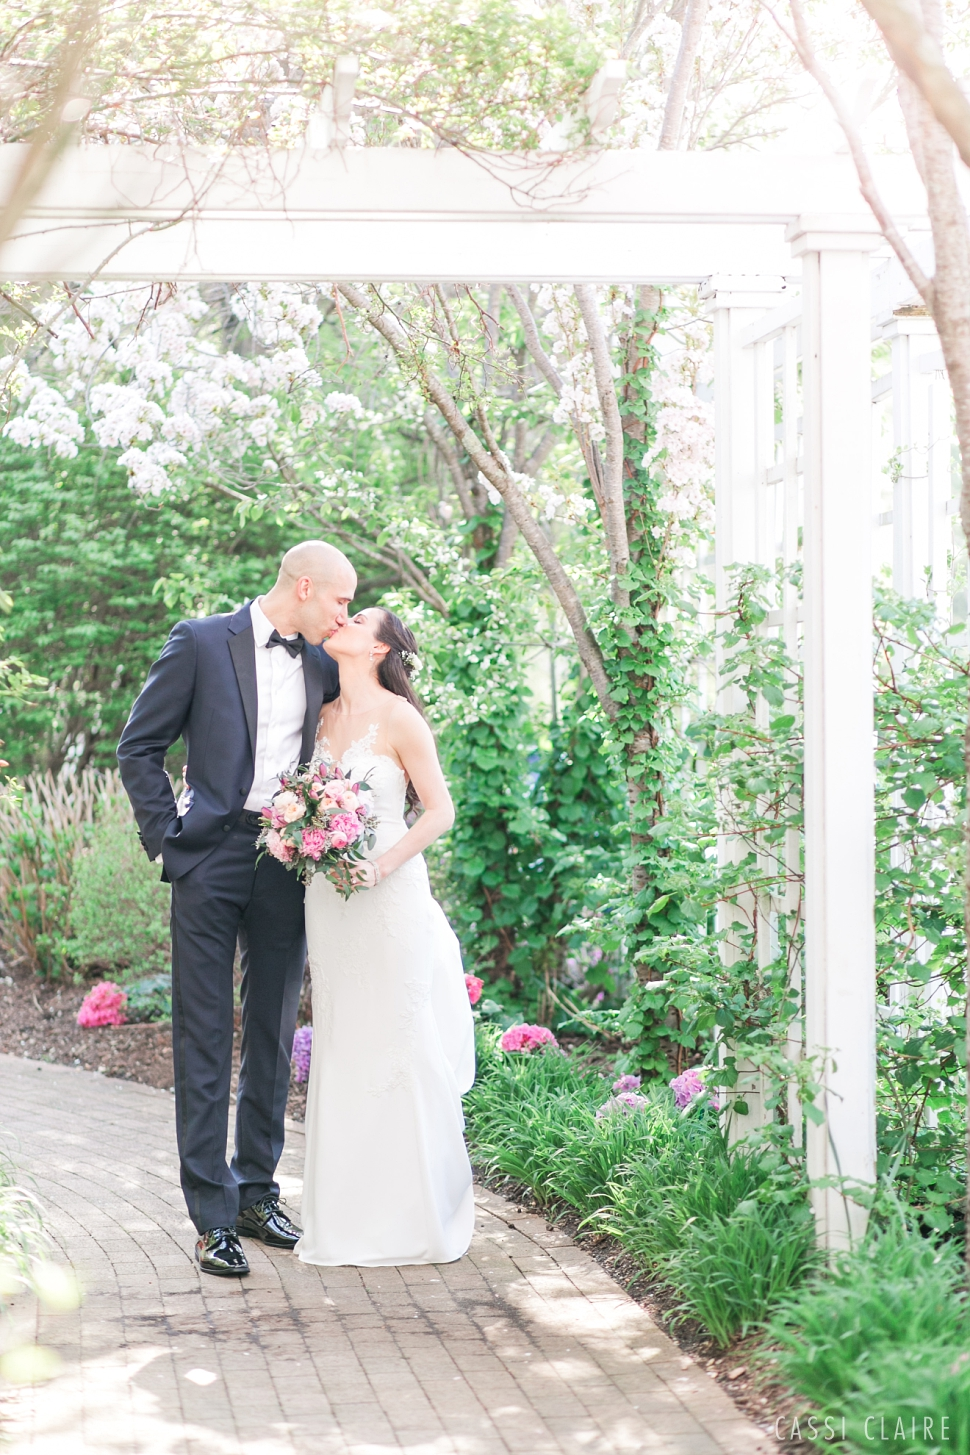 Cherry-Blossom-Wedding_CassiClaire_21.jpg